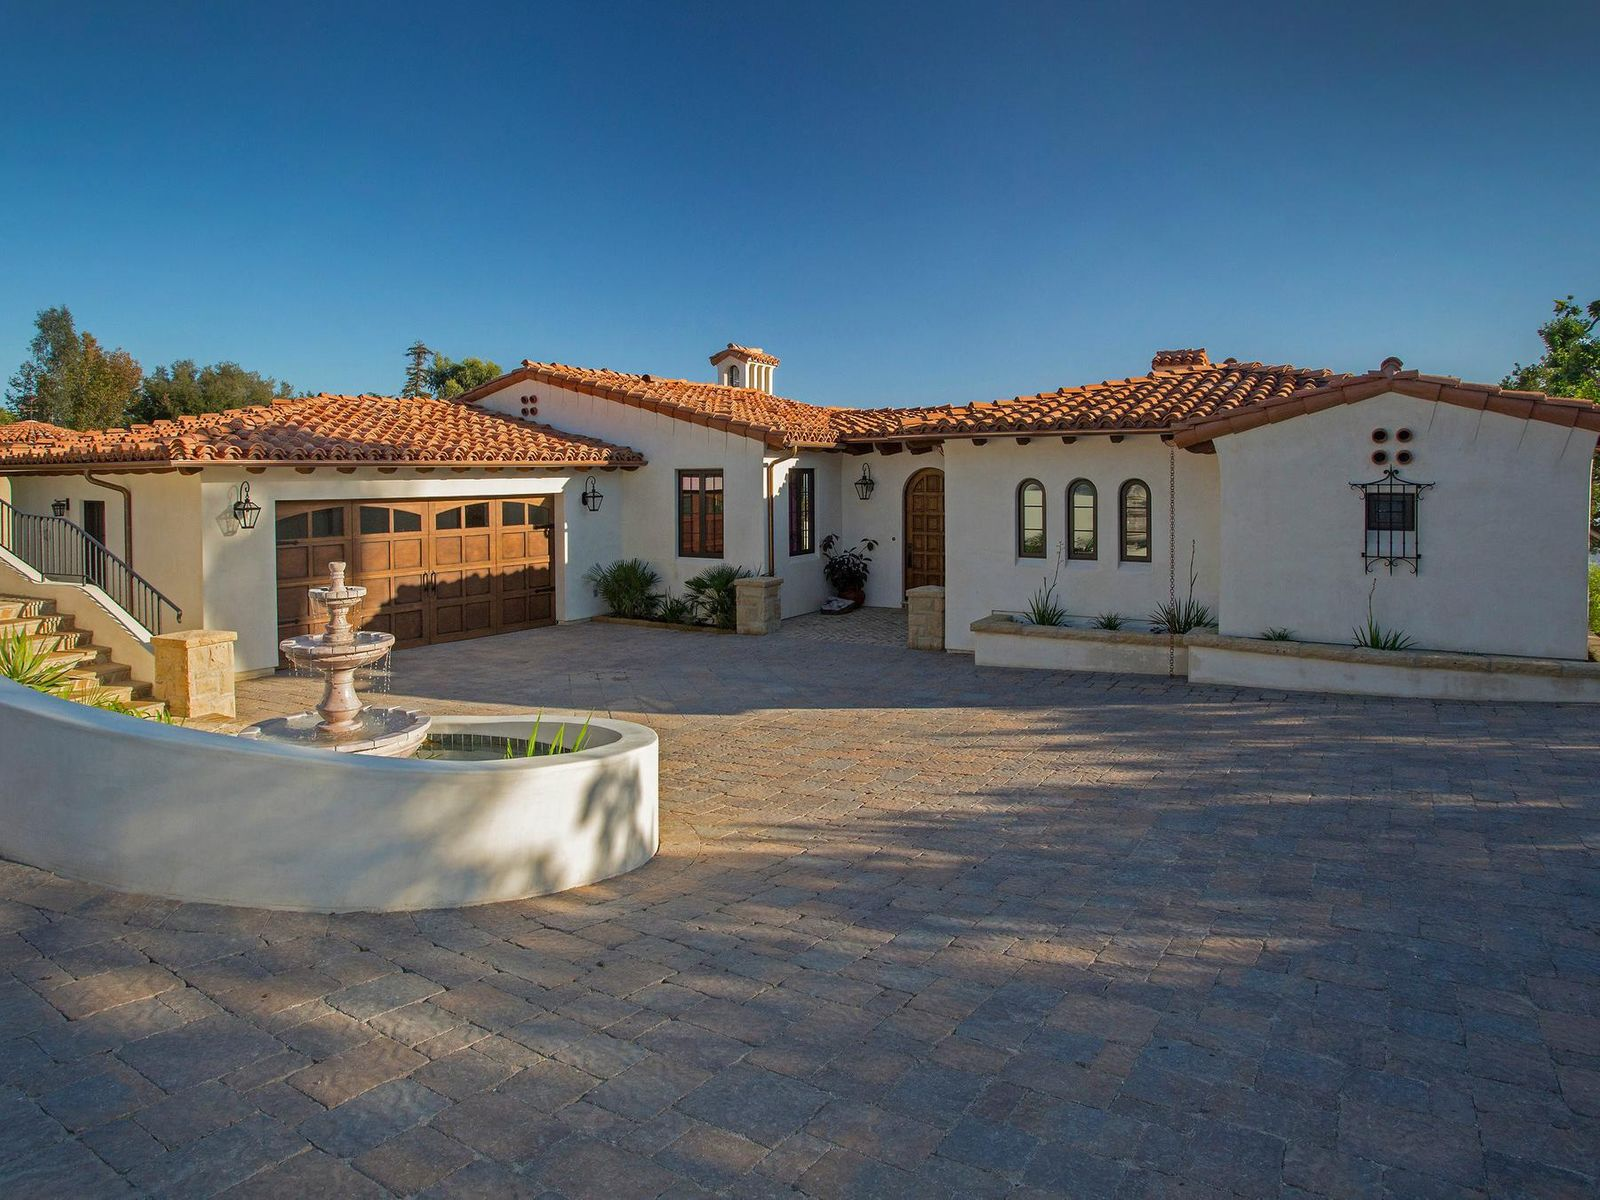 Brand New Riviera Spanish Home, Santa Barbara CA Single Family Home - Santa Barbara Real Estate